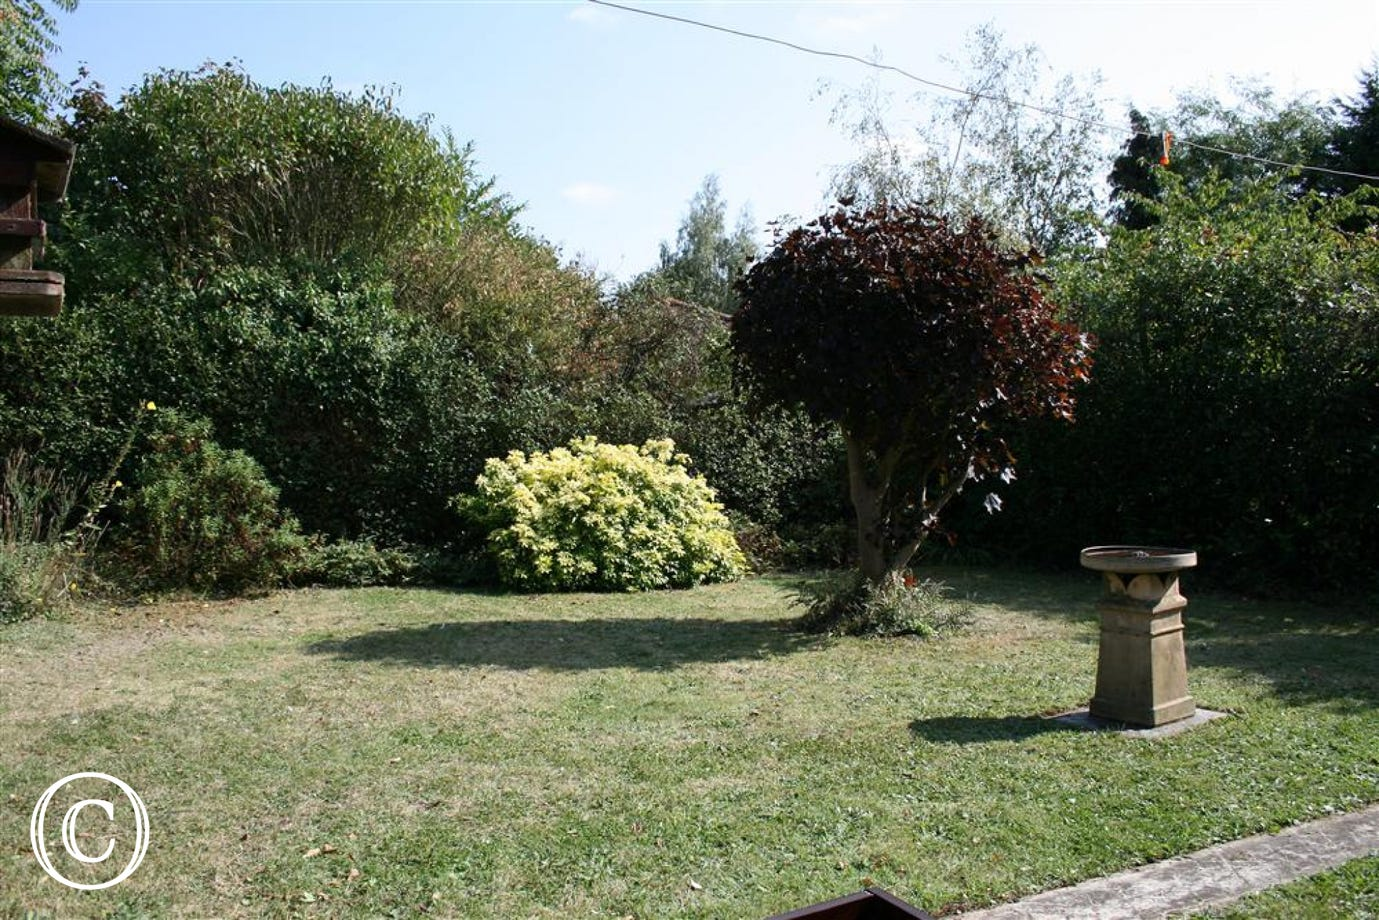 Relax in this garden area in the summer sunshine.